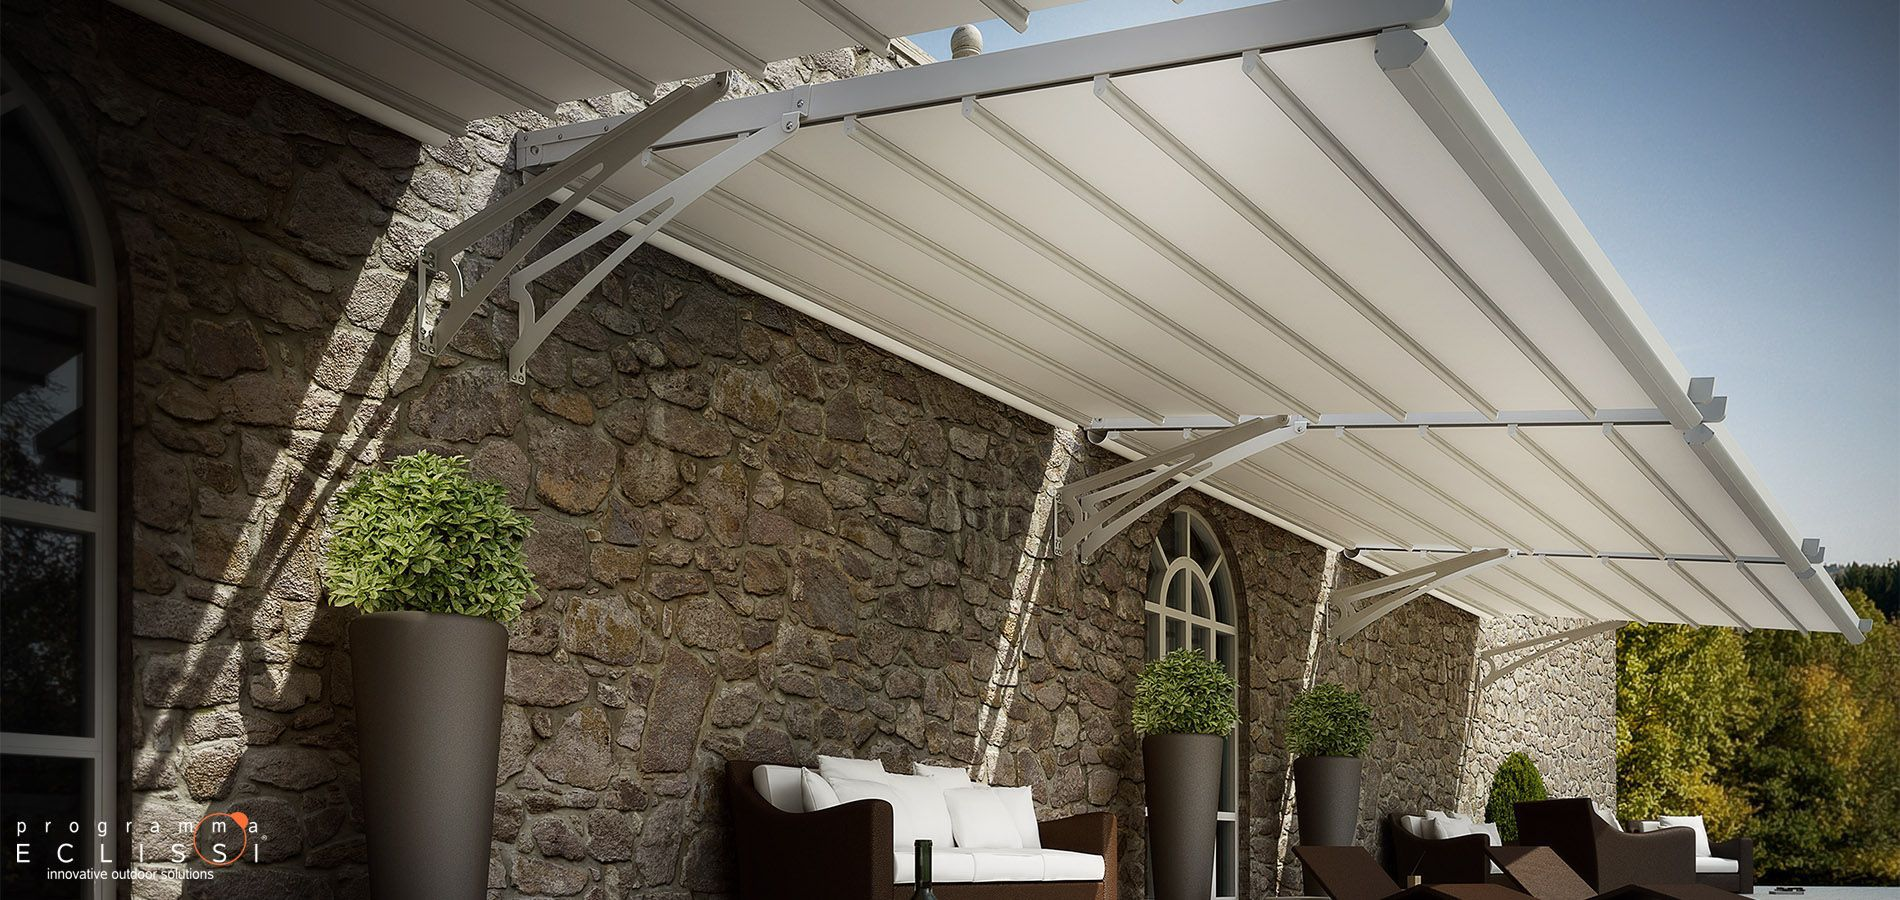 ... Wall-mounted pergola / aluminum / stainless steel / PVC fabric sliding canopy FLY DIRELLO & Wall-mounted pergola / aluminum / stainless steel / PVC fabric ...